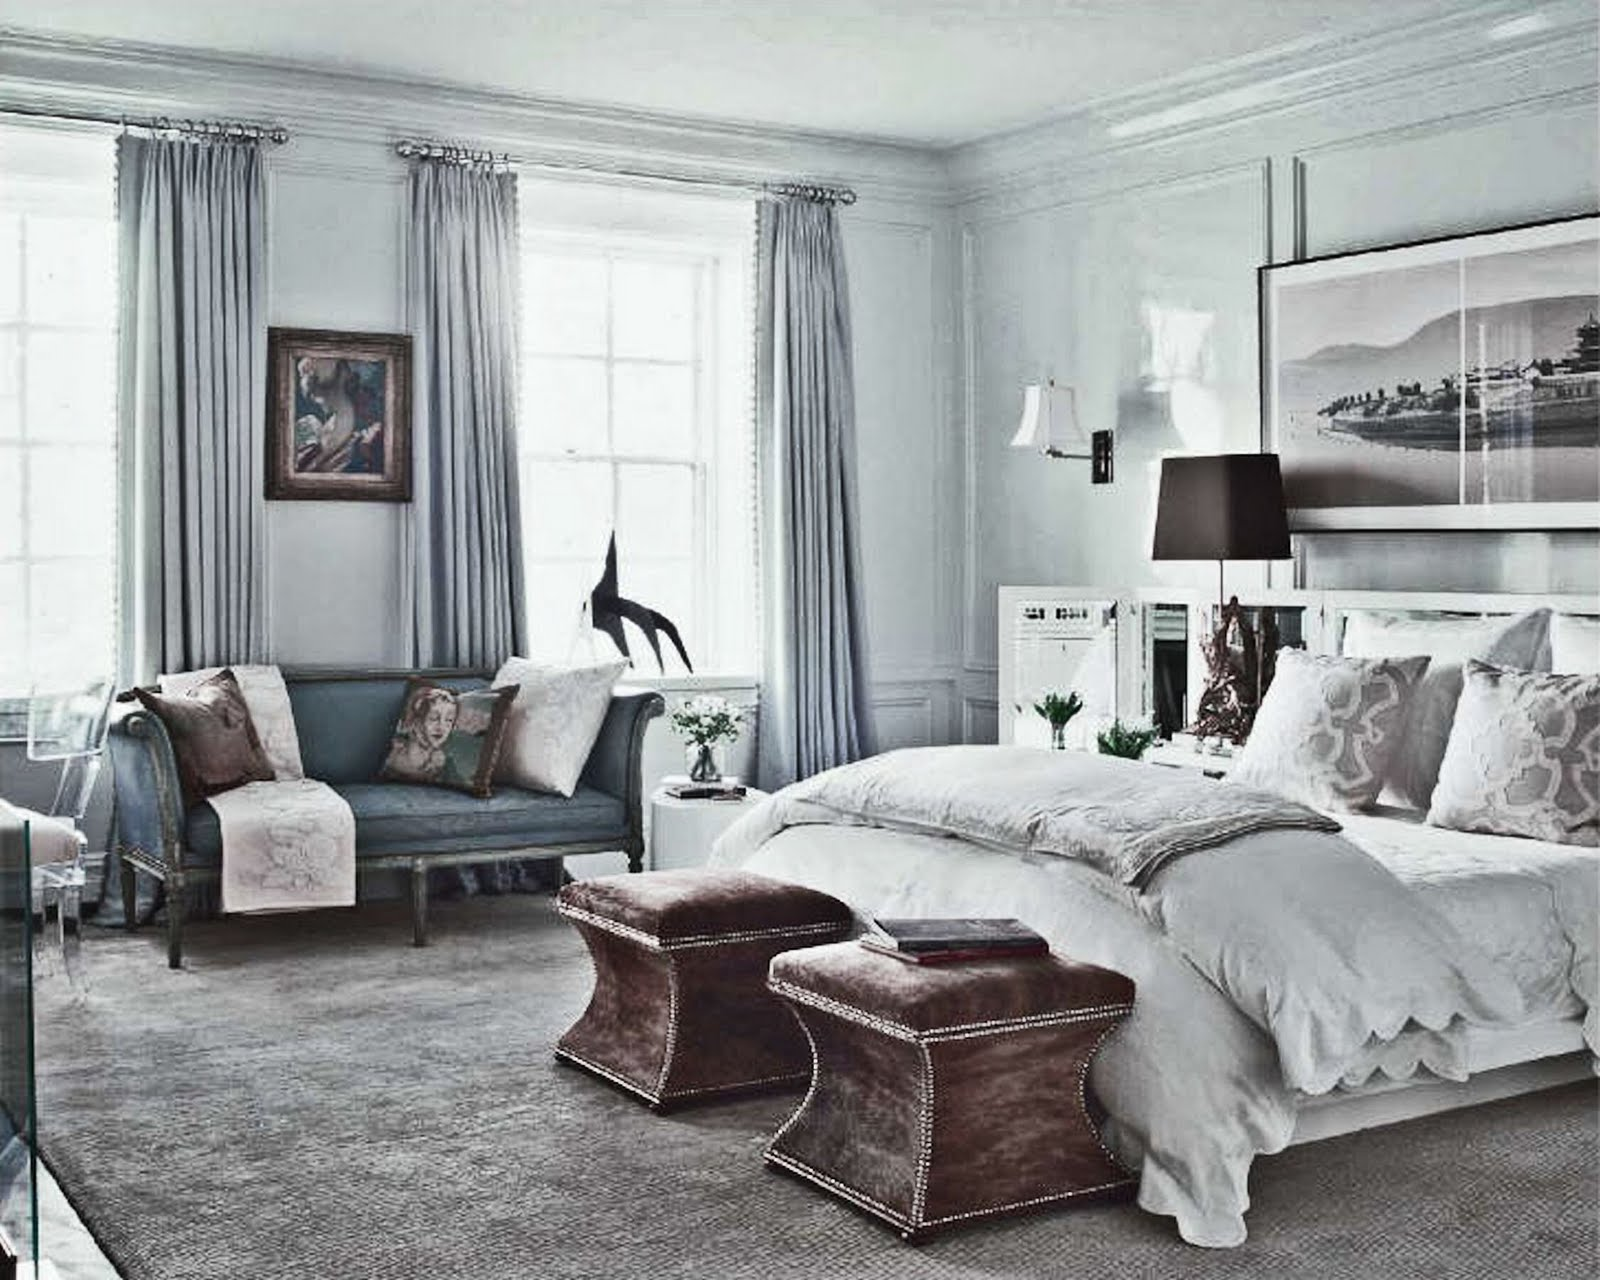 Simple everyday glamour picture perfect bedroom for Blue white and silver bedroom ideas